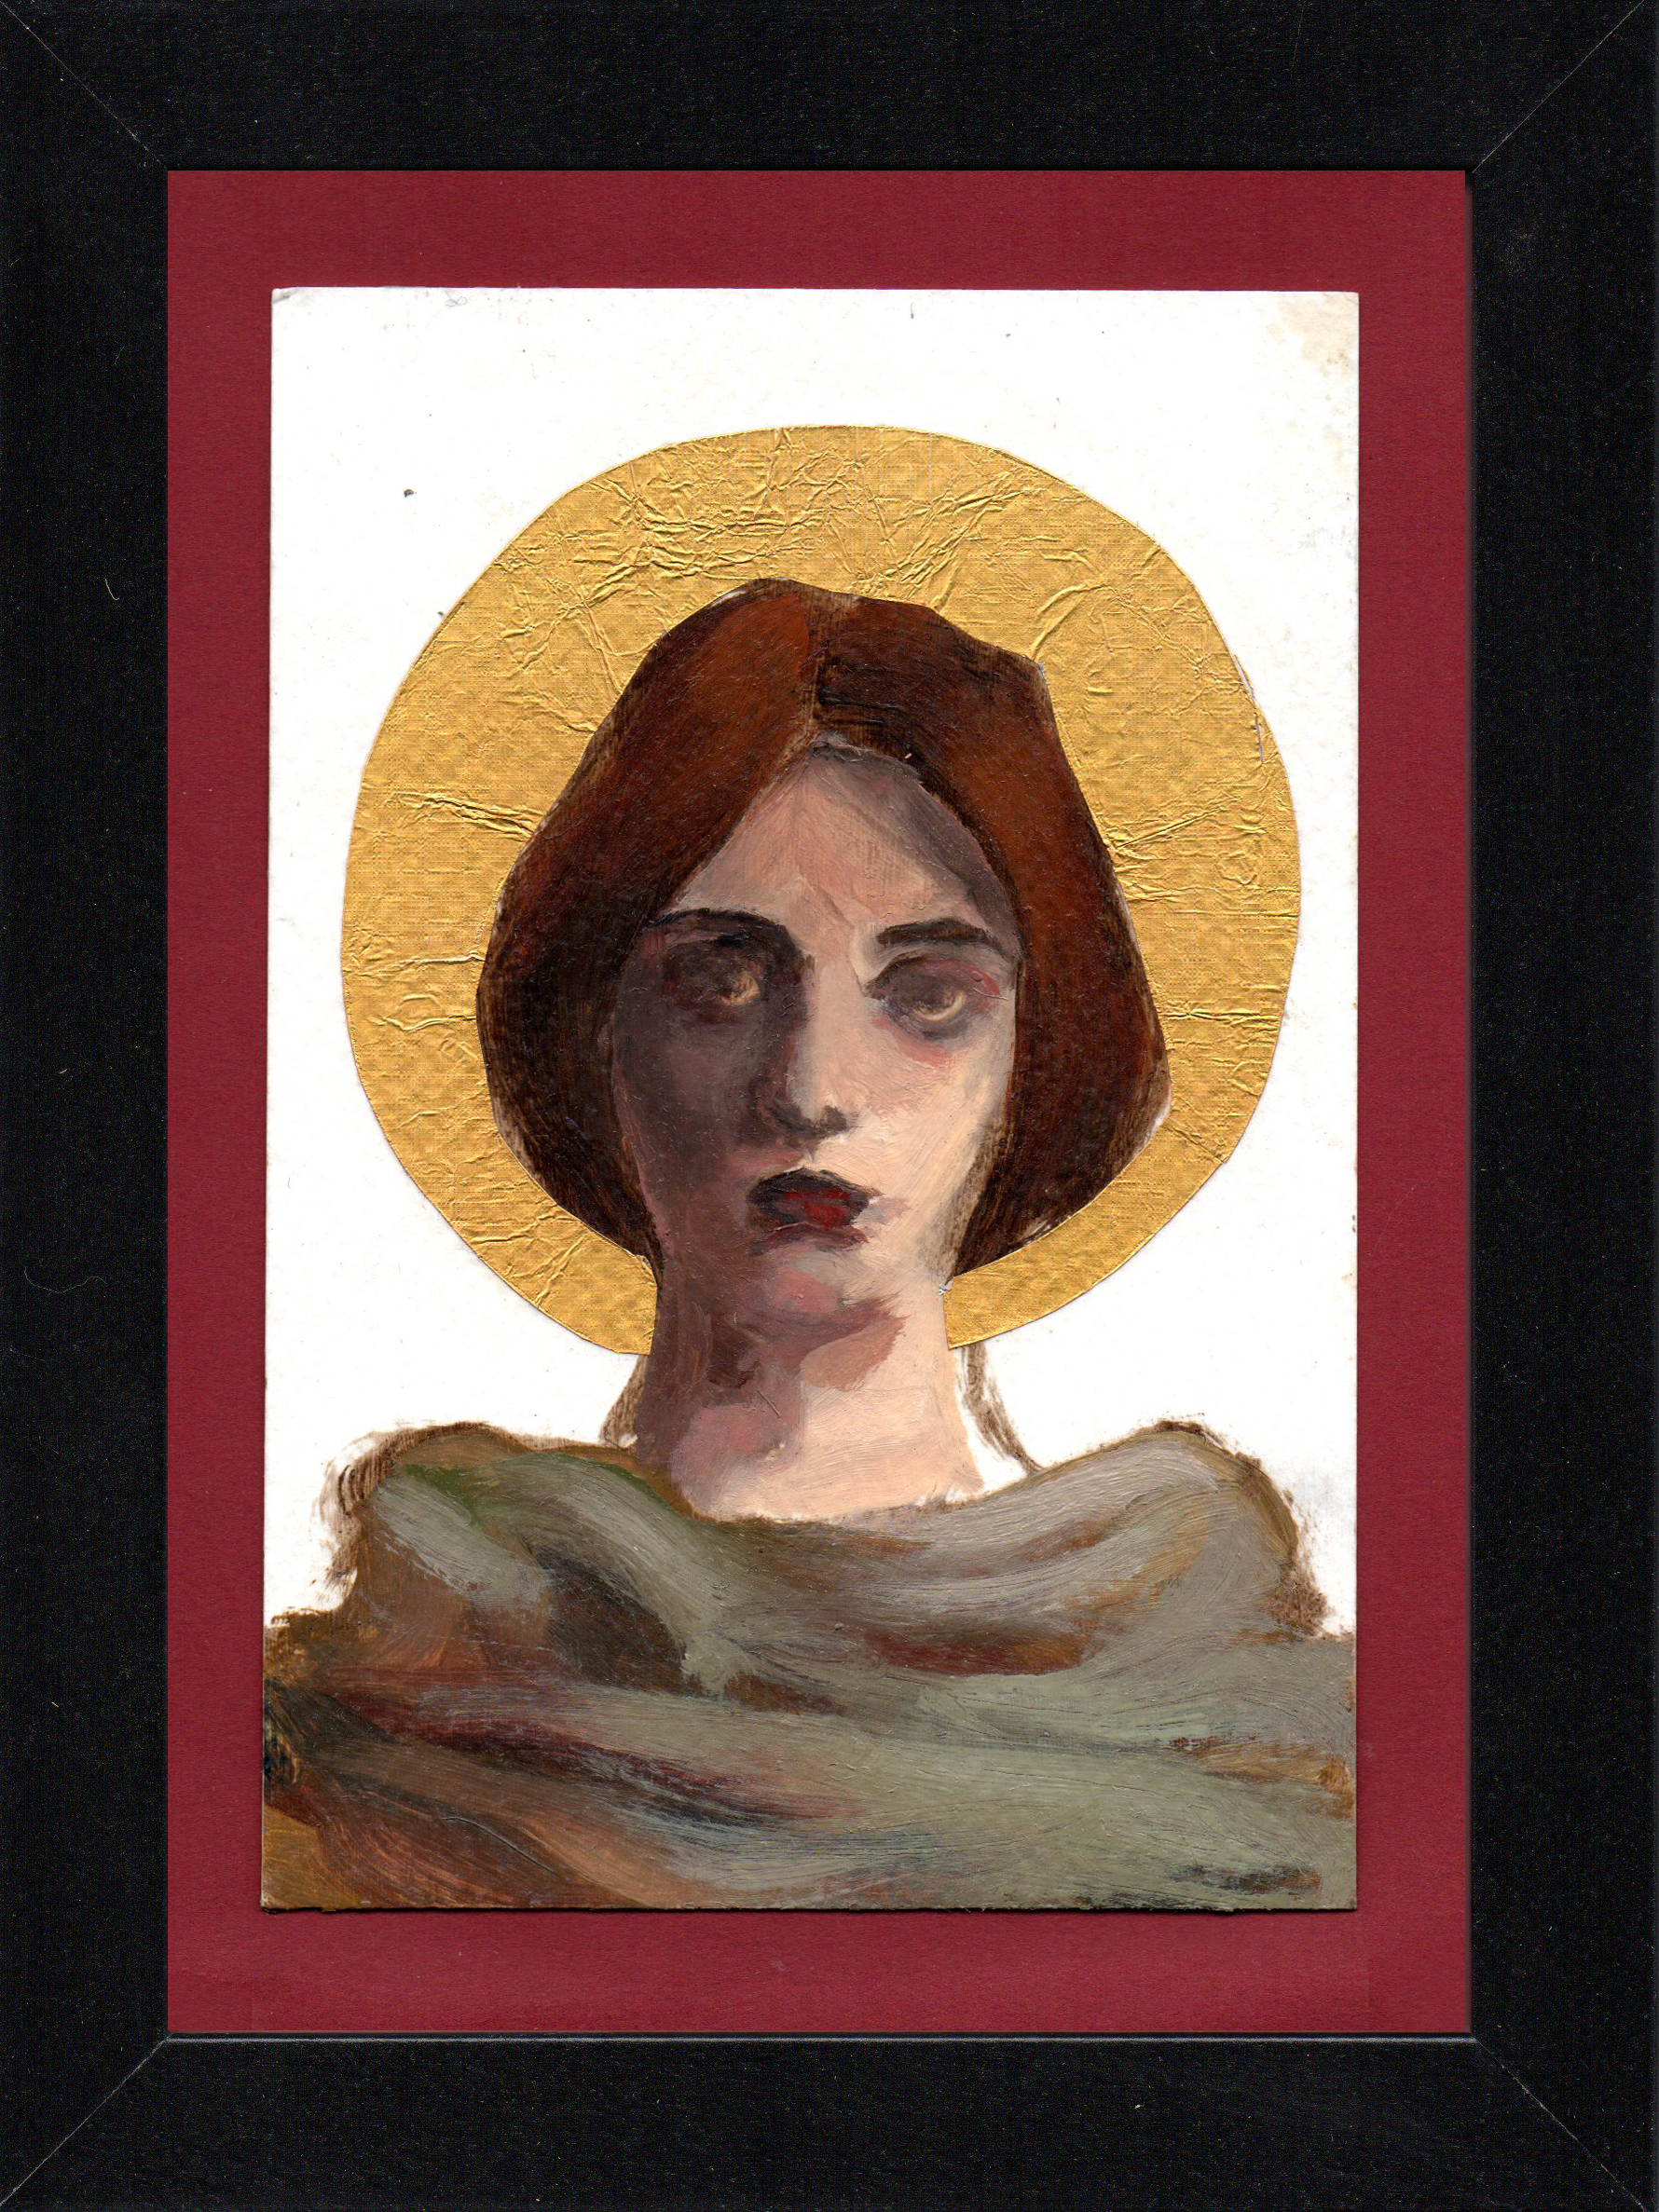 "Postcard Saint 3, oil & gold foil on paper 10.5 x 15 cm (4"" x 6""), 2016"